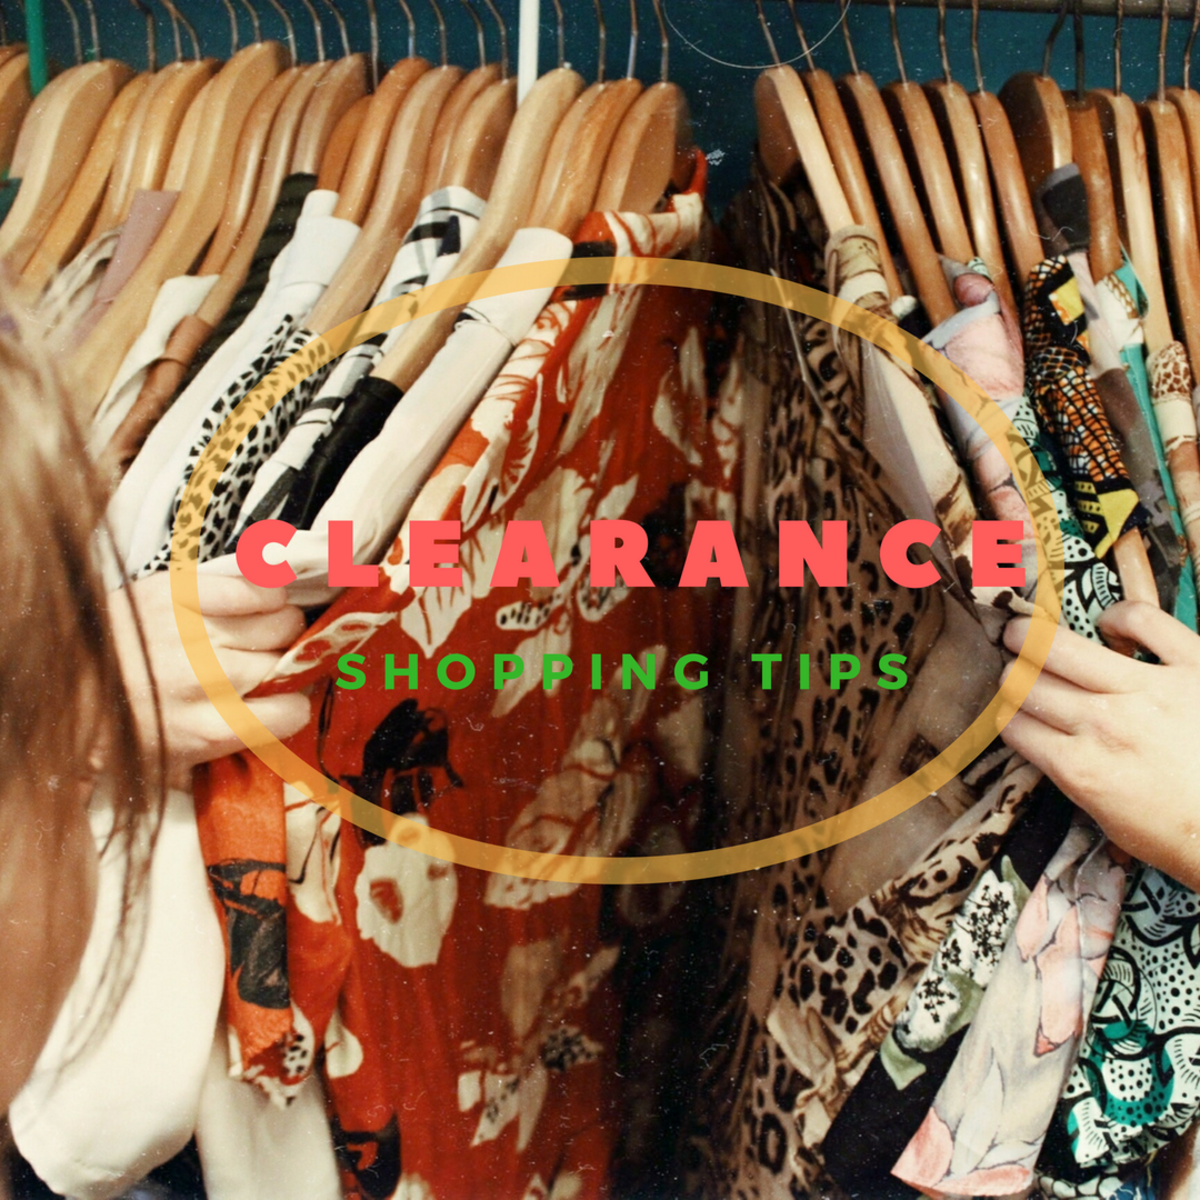 Why I Only Shop on Clearance and Why You Should, Too